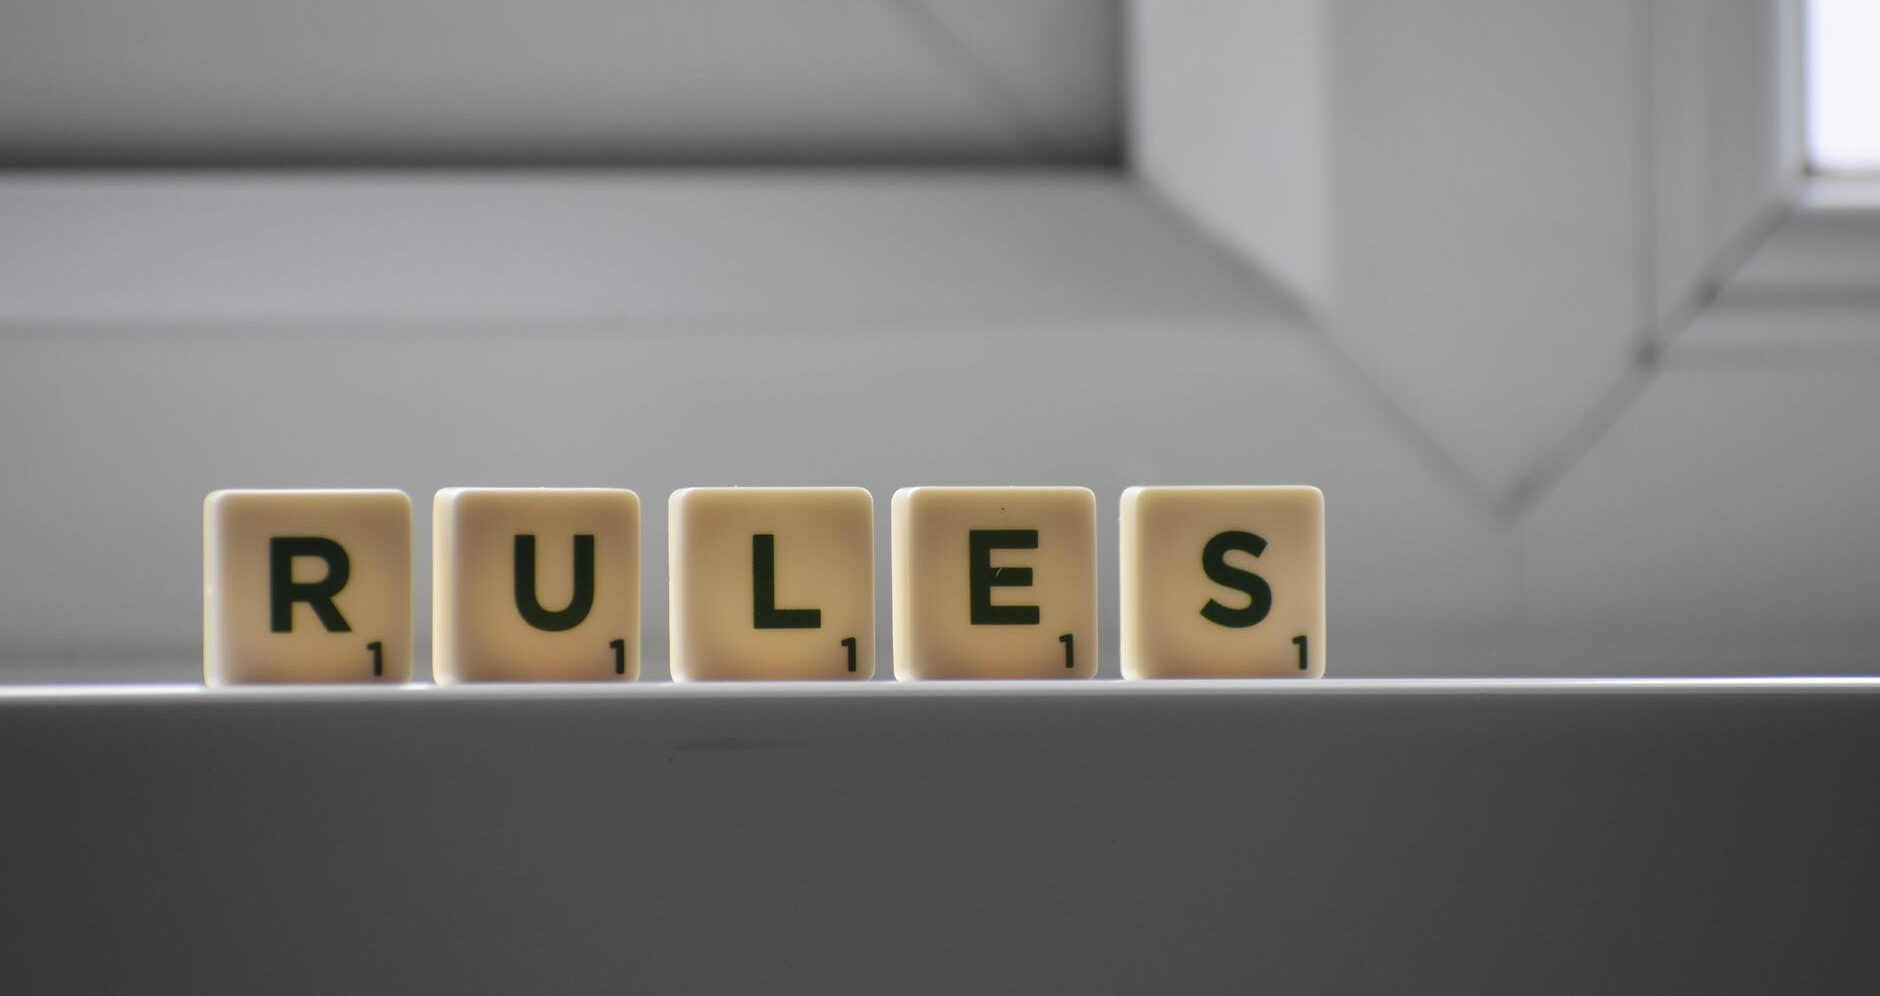 You are currently viewing The 4 Golden Rules of UI Design